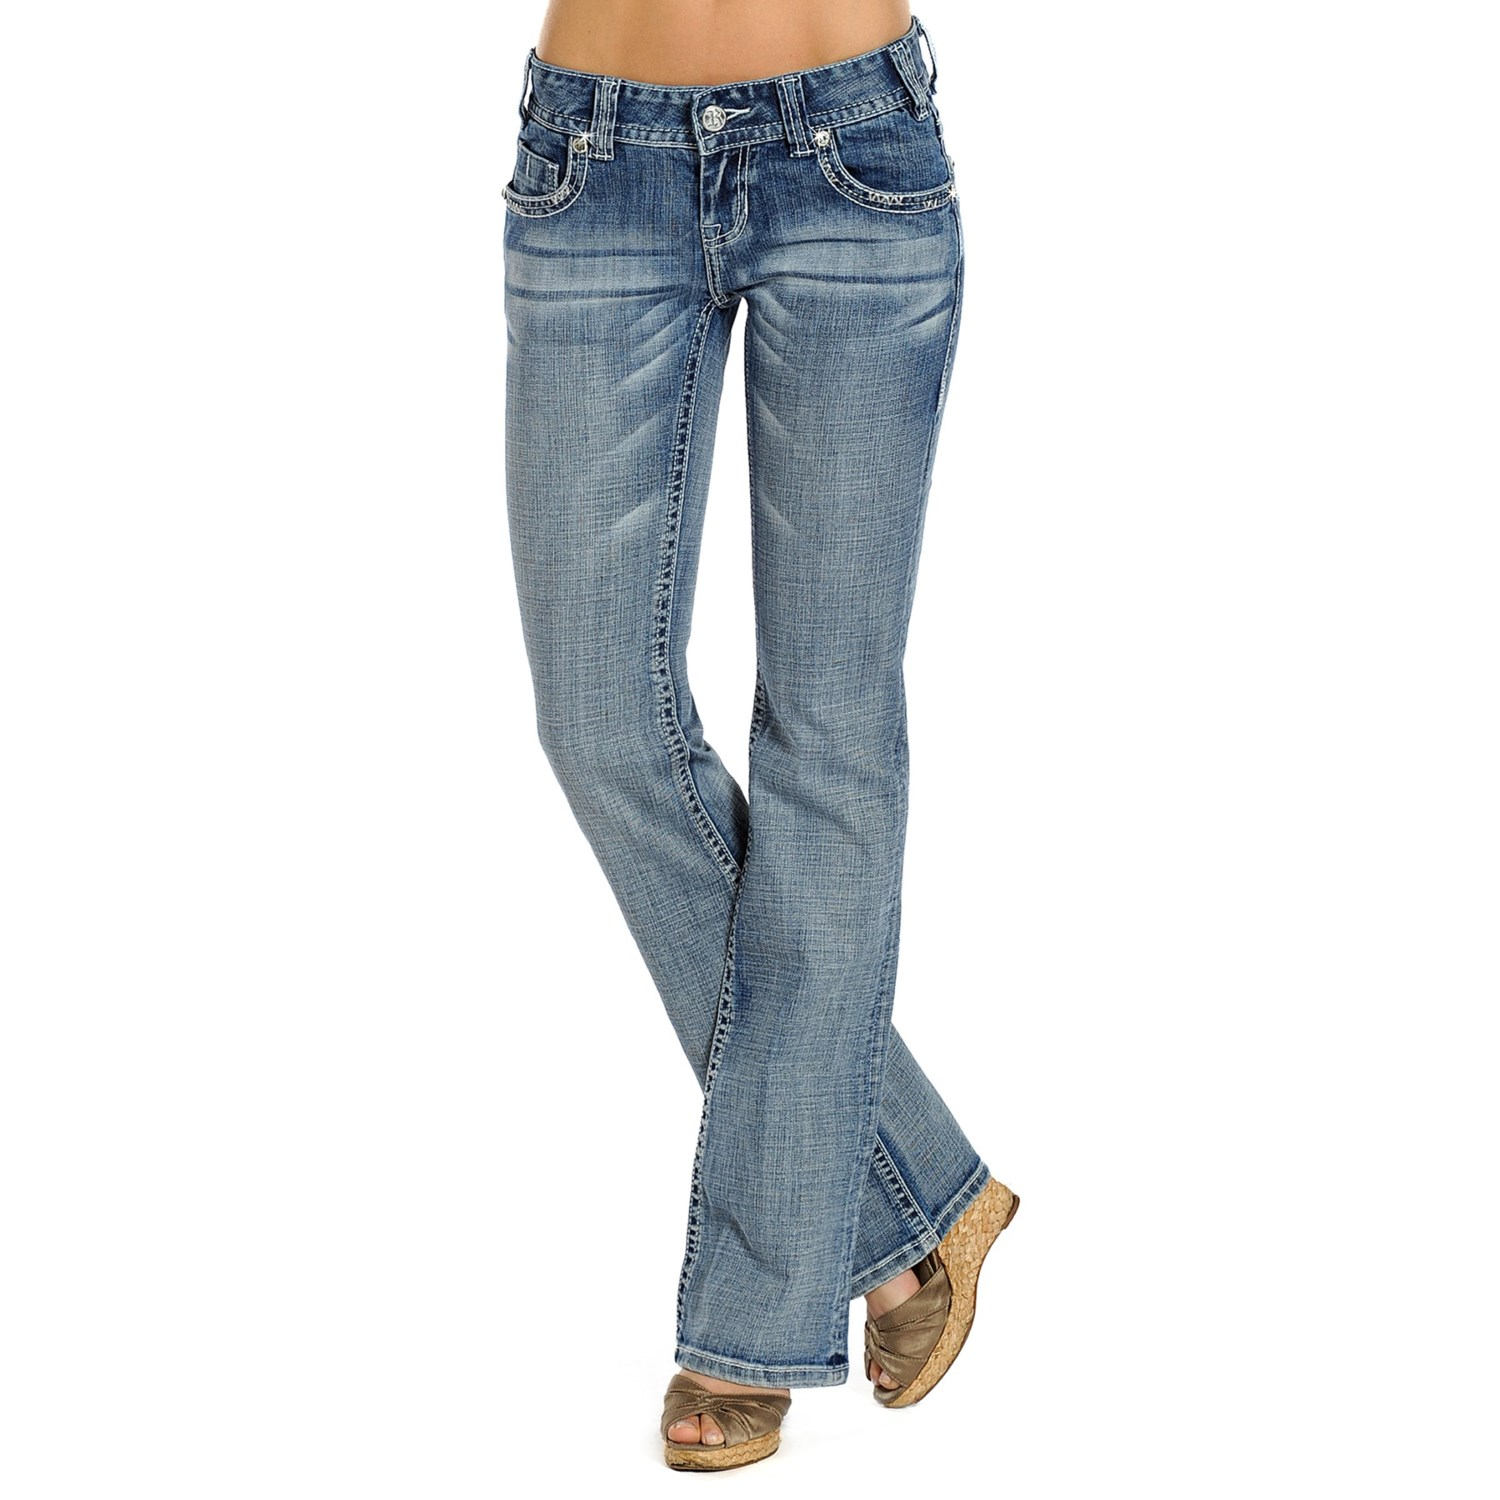 Rock roll cowgirl embroidered jeans for women c